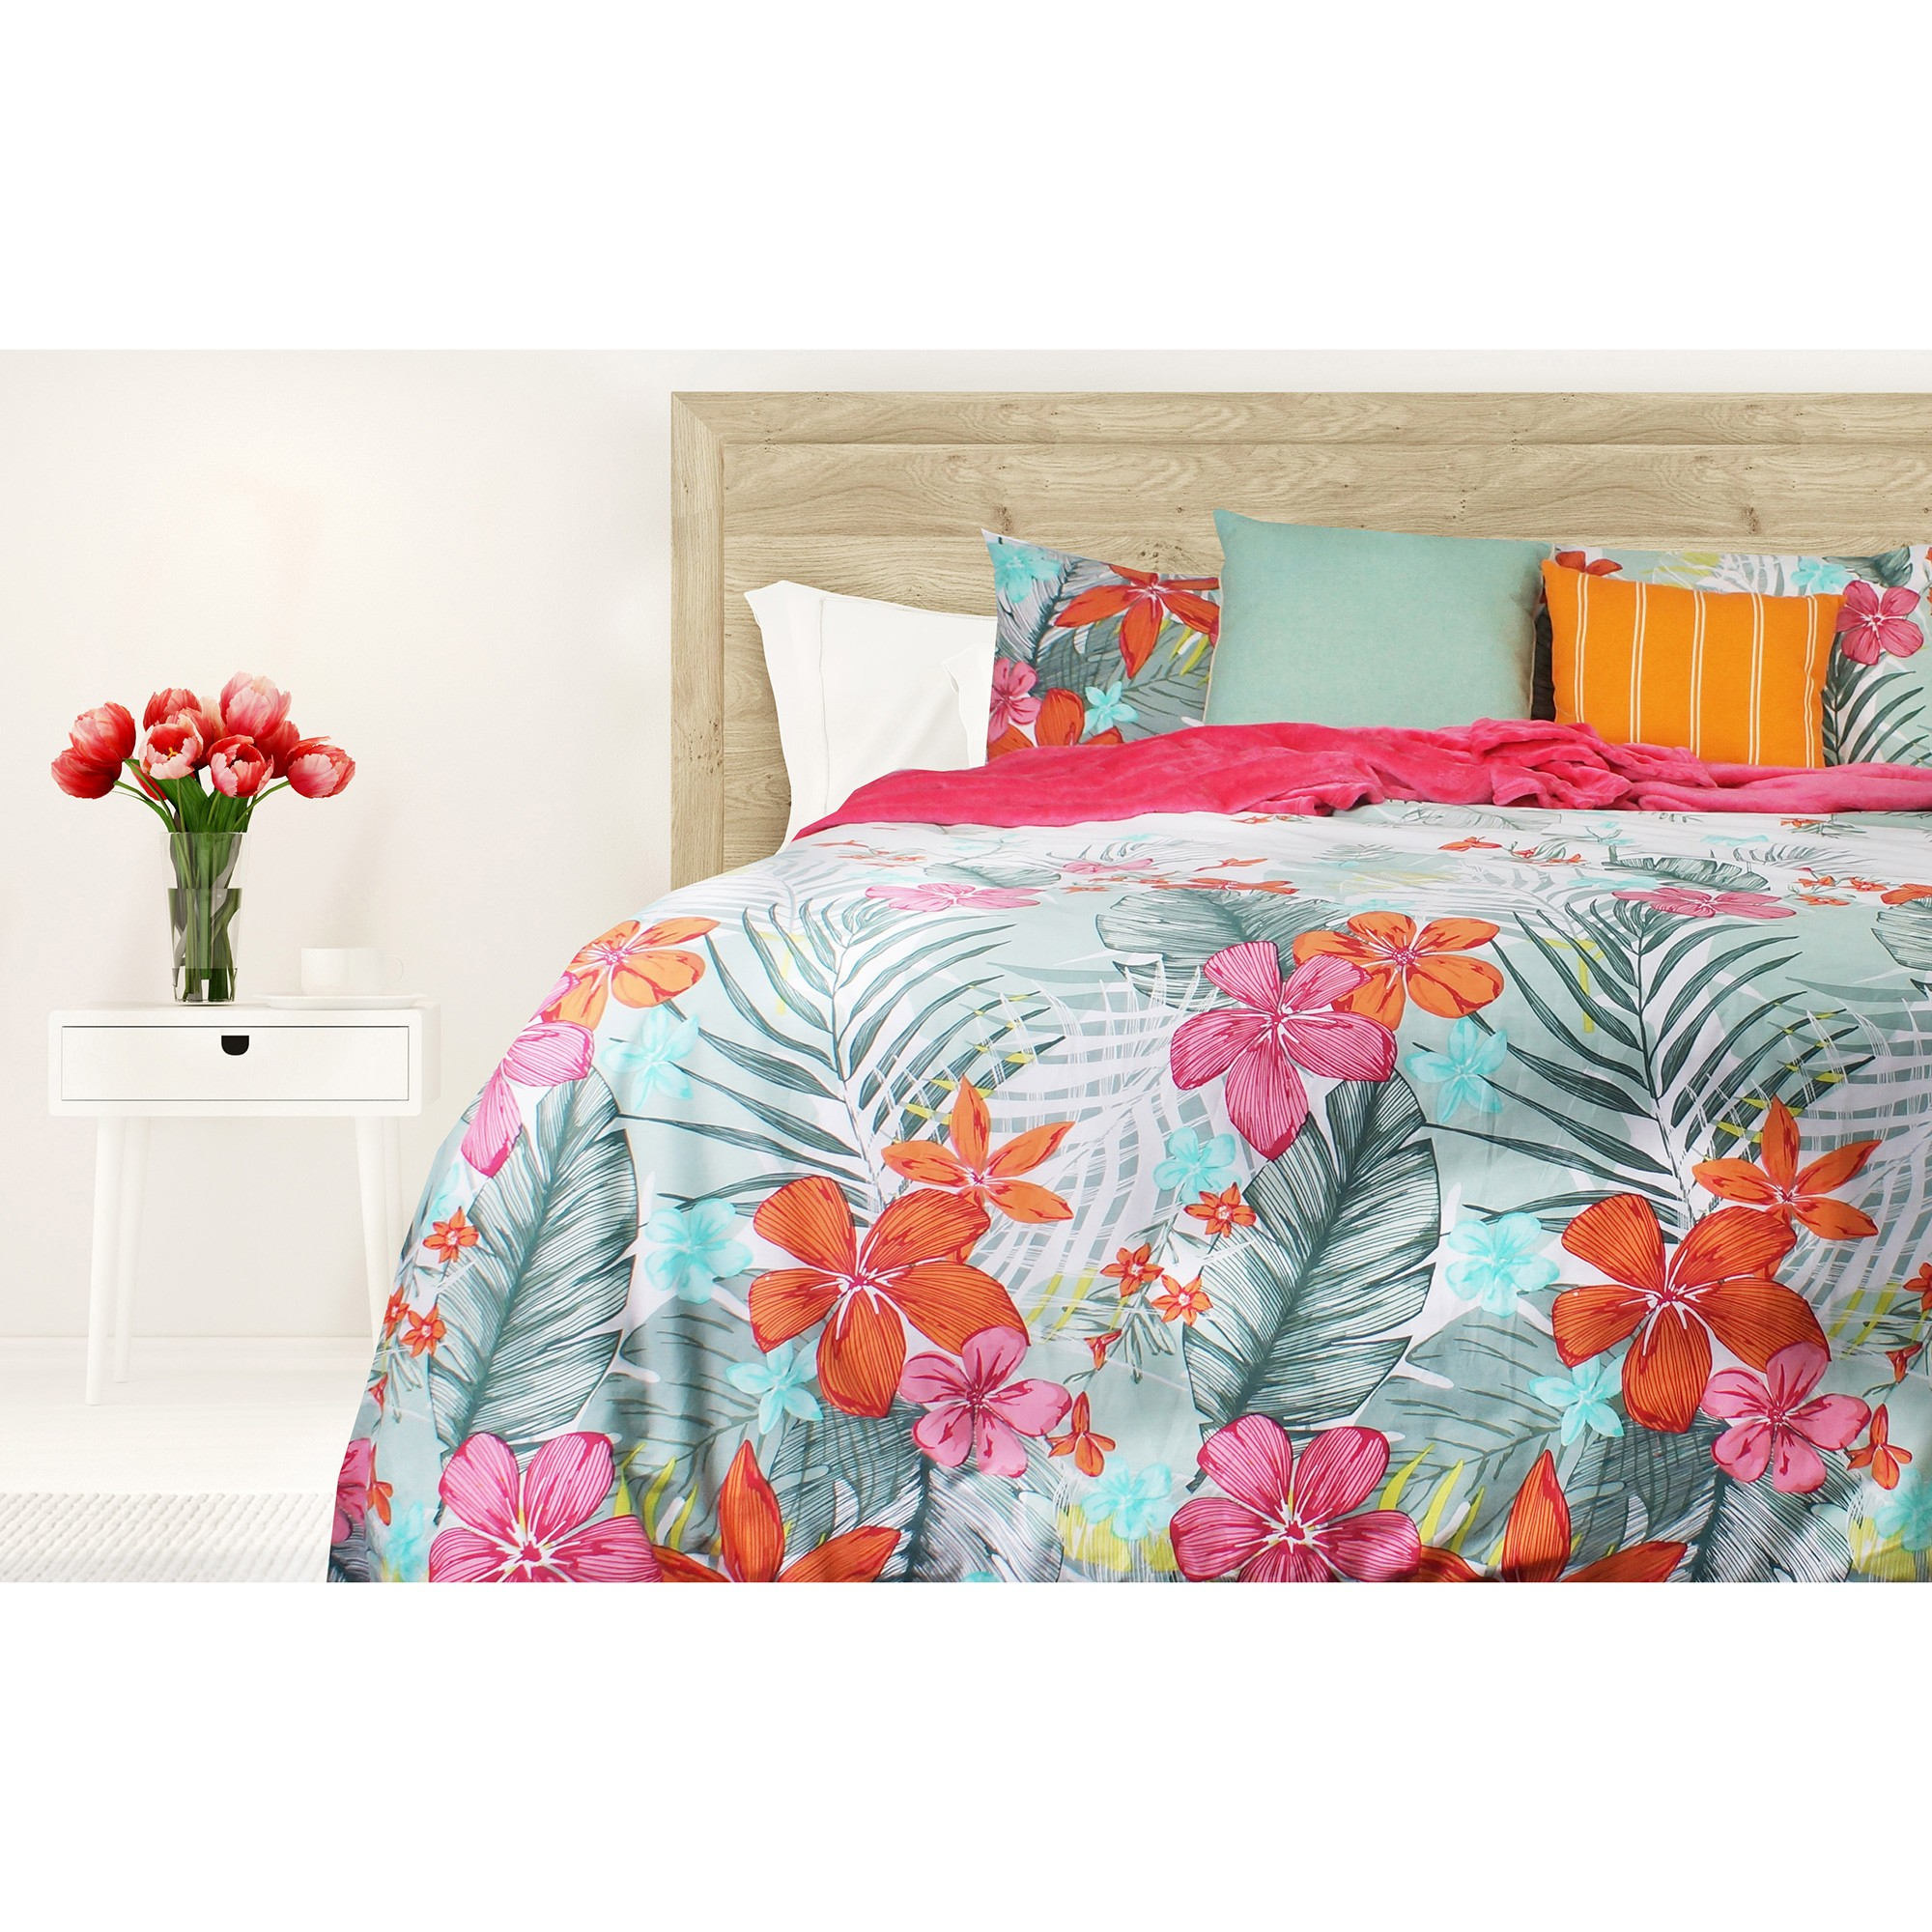 Odyssey Living Hartford Cotton Quilt Cover Set, Double